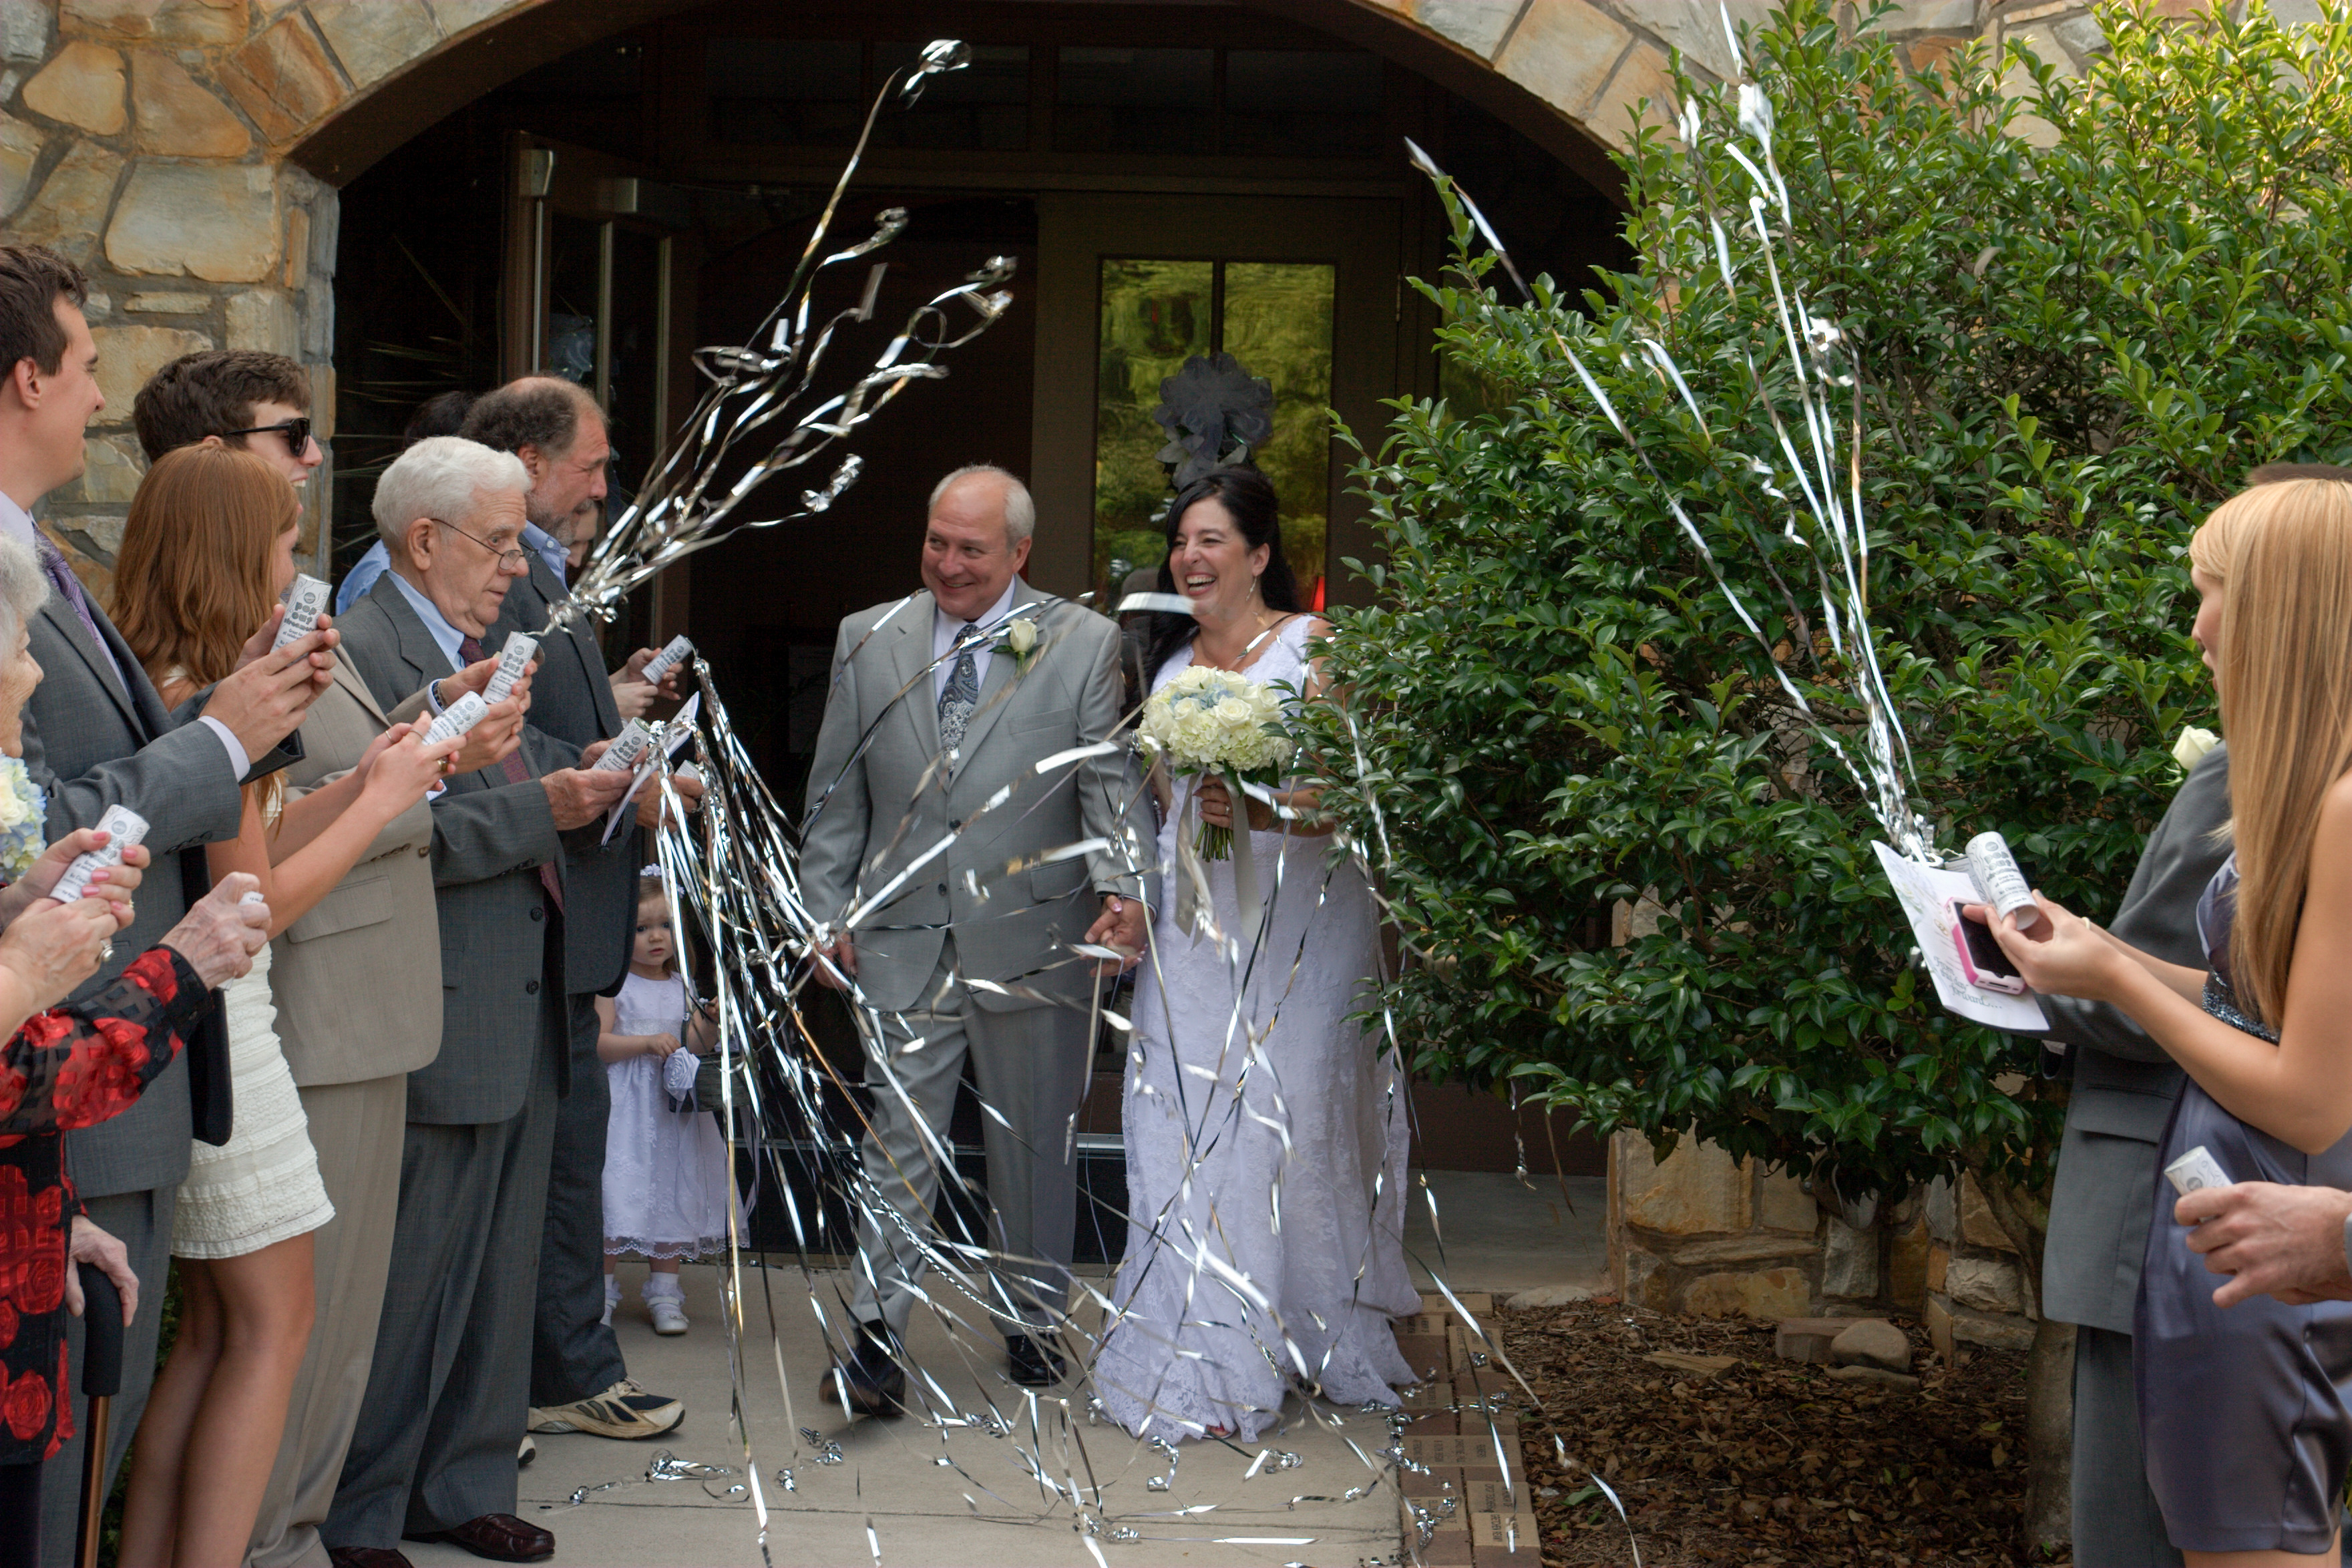 Wedding couple exit through streamers